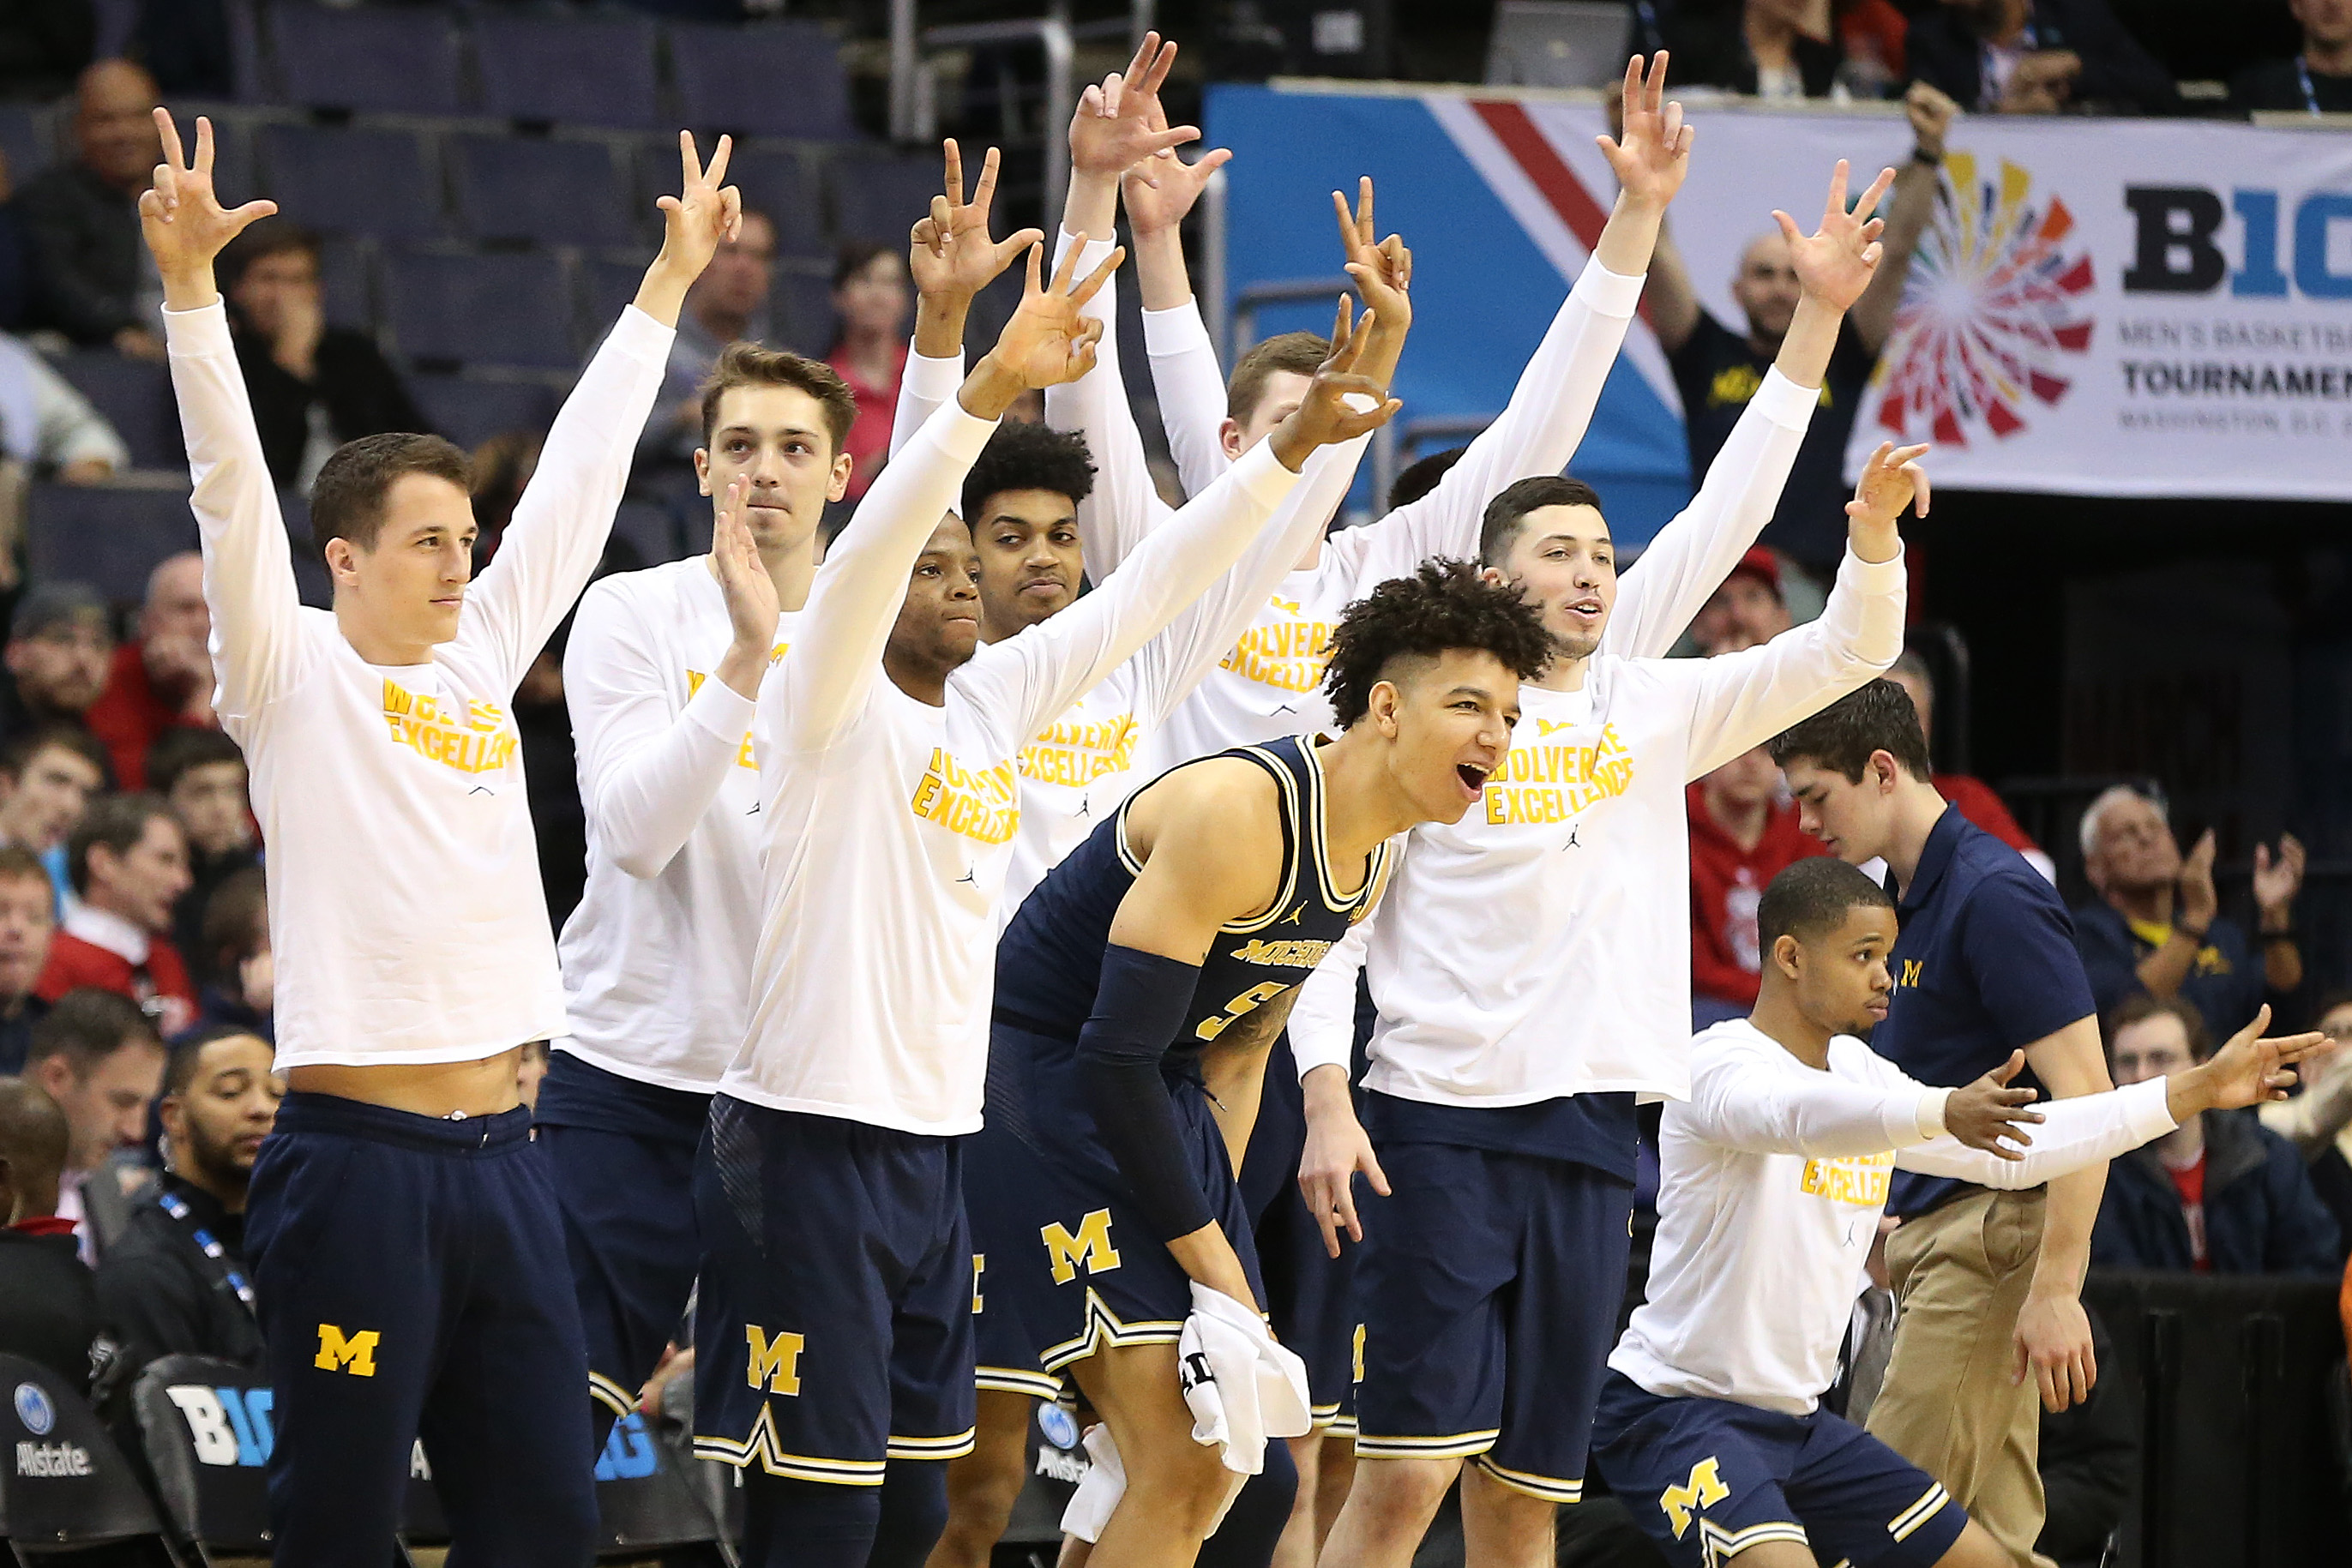 March Madness: 3 Teams to Look for During Selection Sunday - Page 2